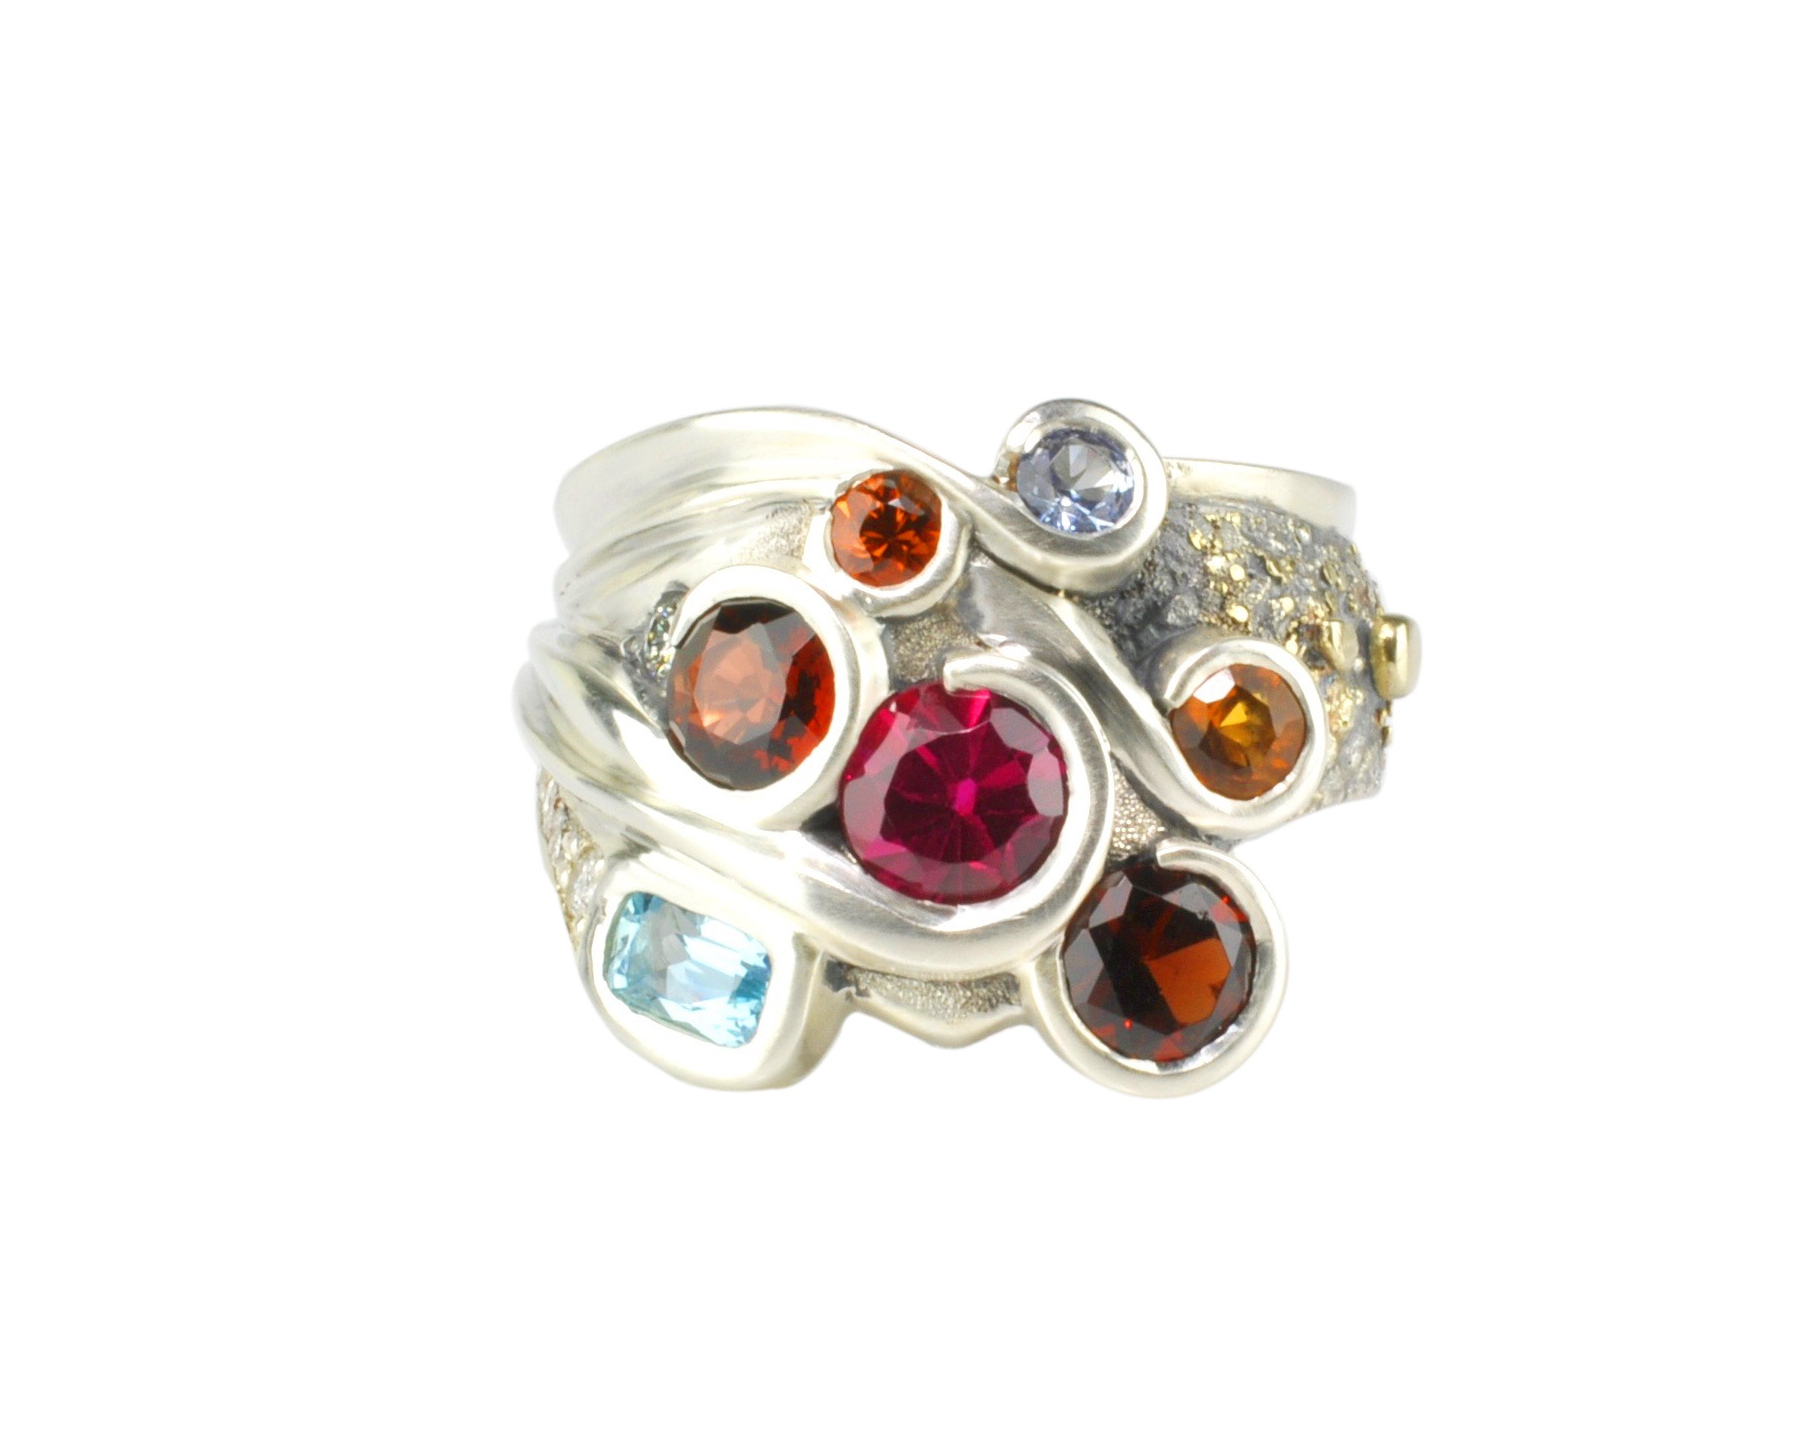 Sterling Silver Ring with 18k Gold Fusion and Multi-Colored Gemstones